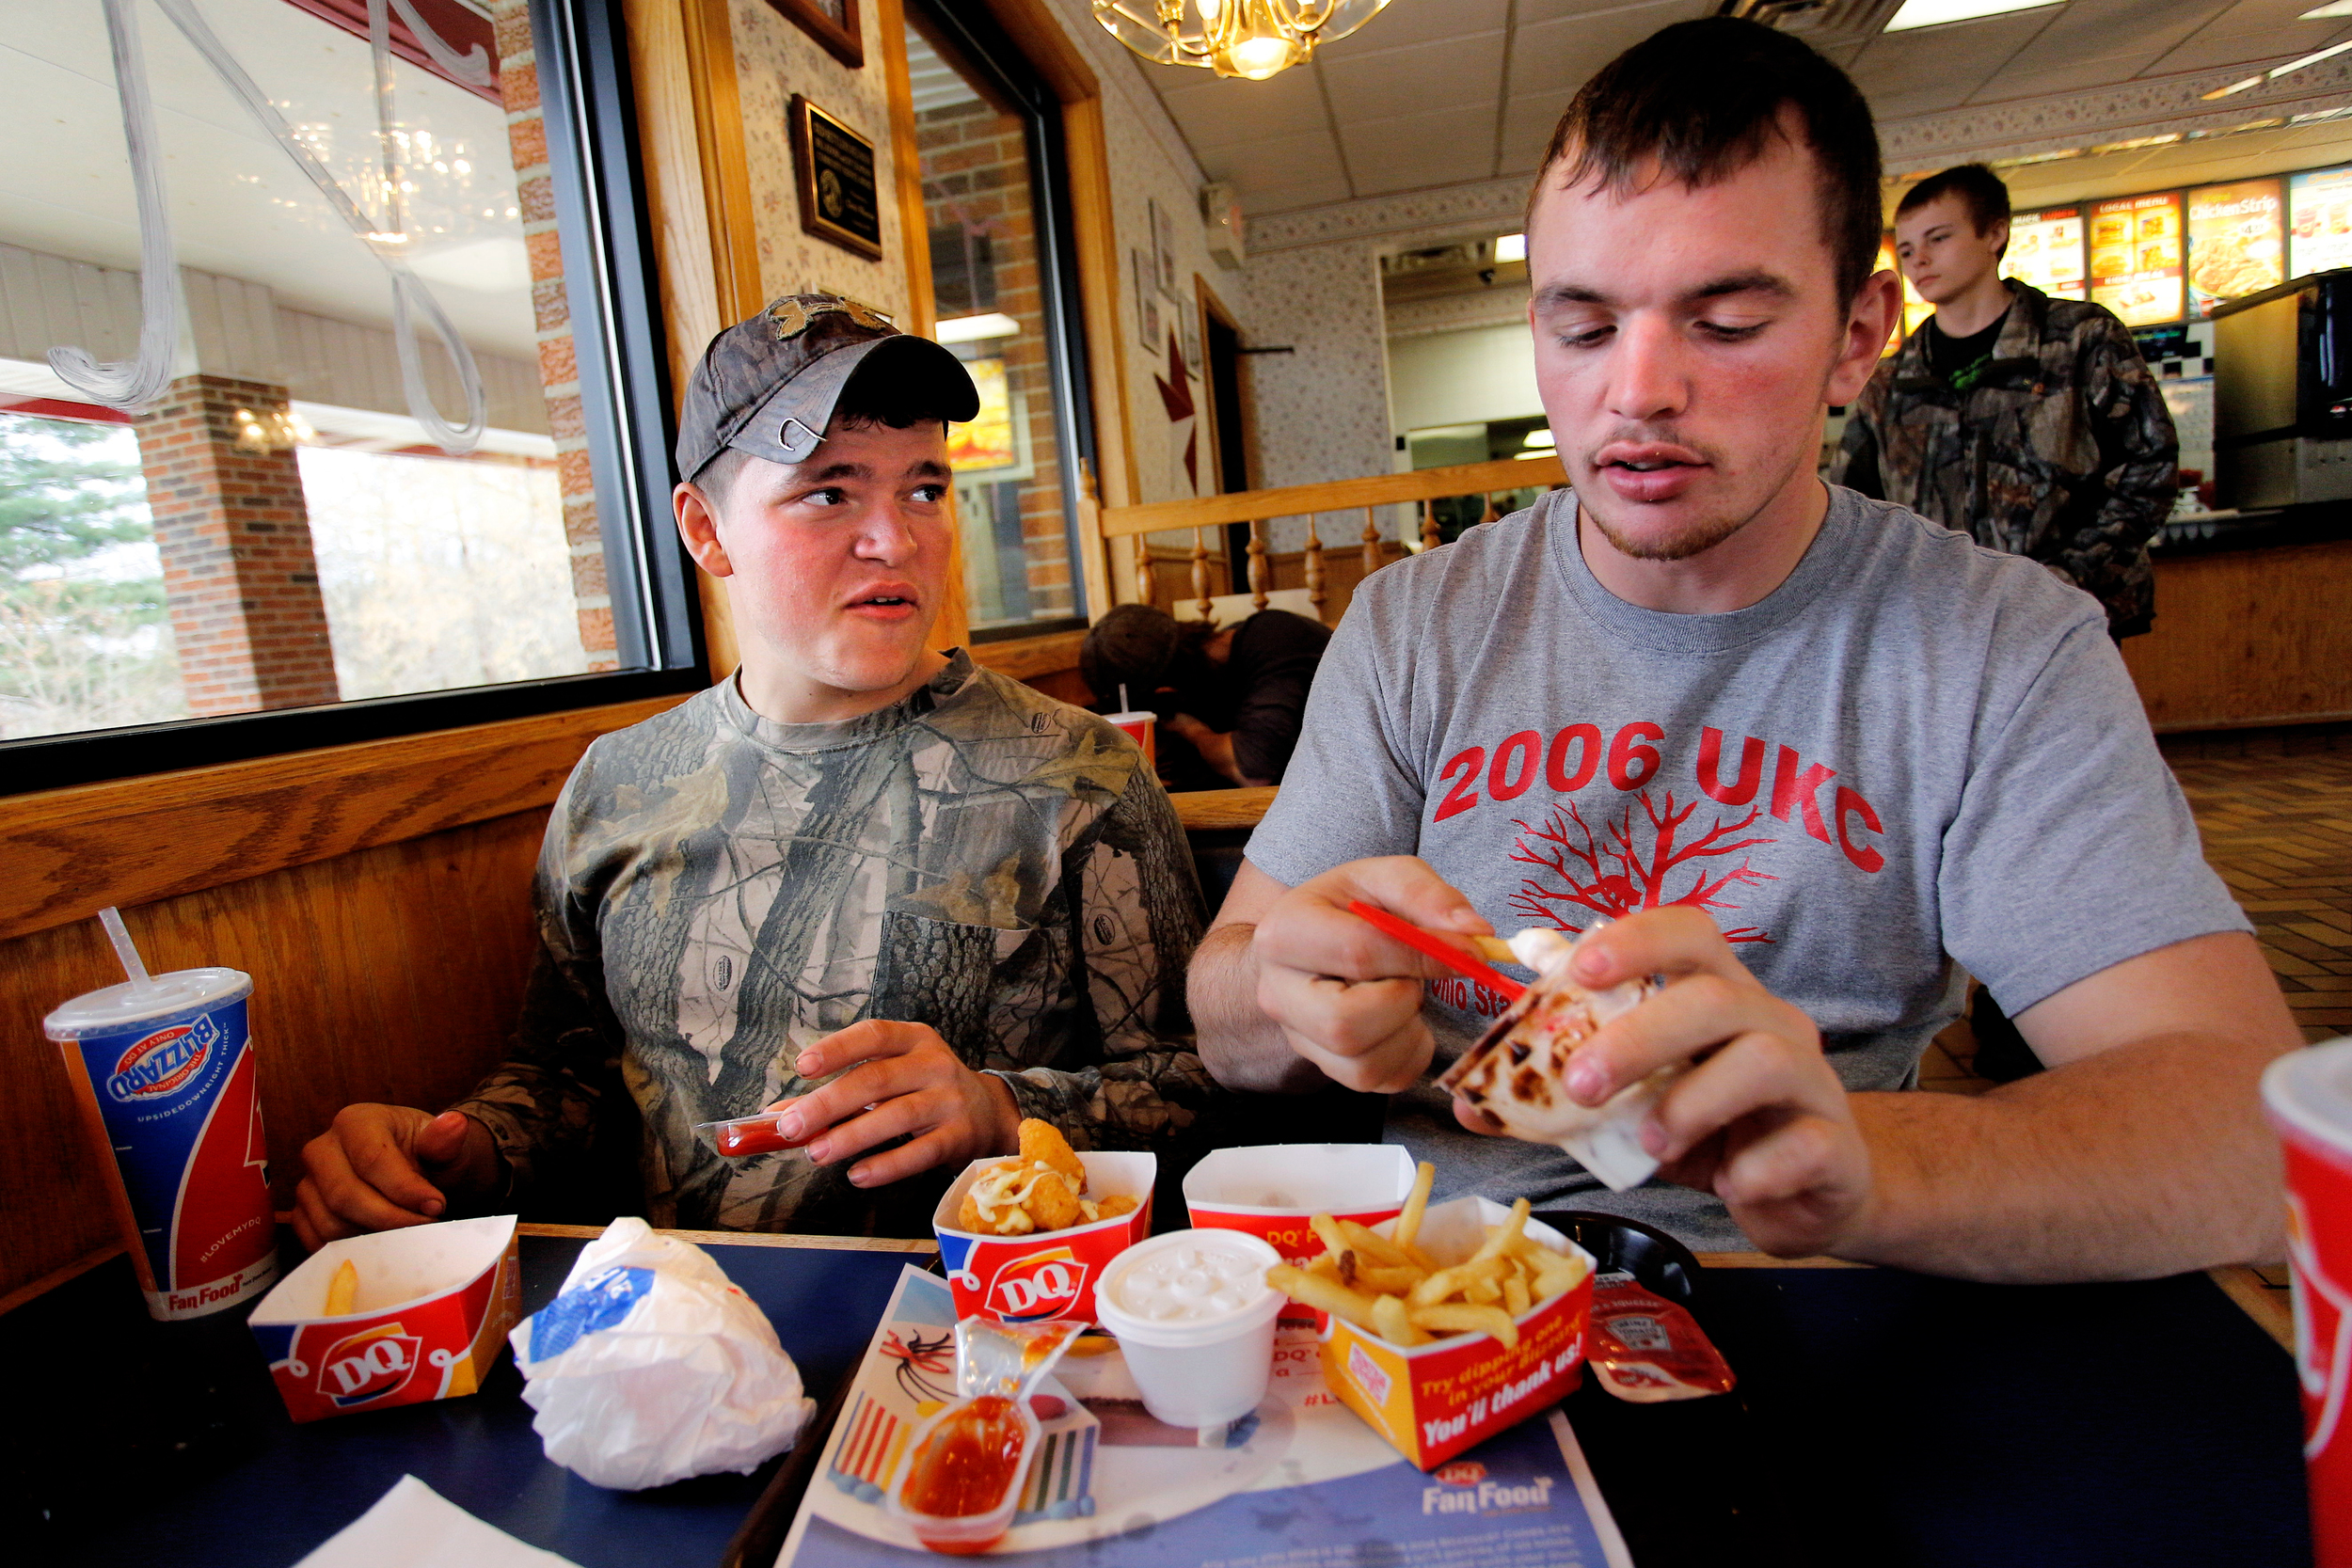 Smathers chats with Jacob Koons while grabbing lunch after rabbit hunting at Dairy Queen in Glouster, Ohio.